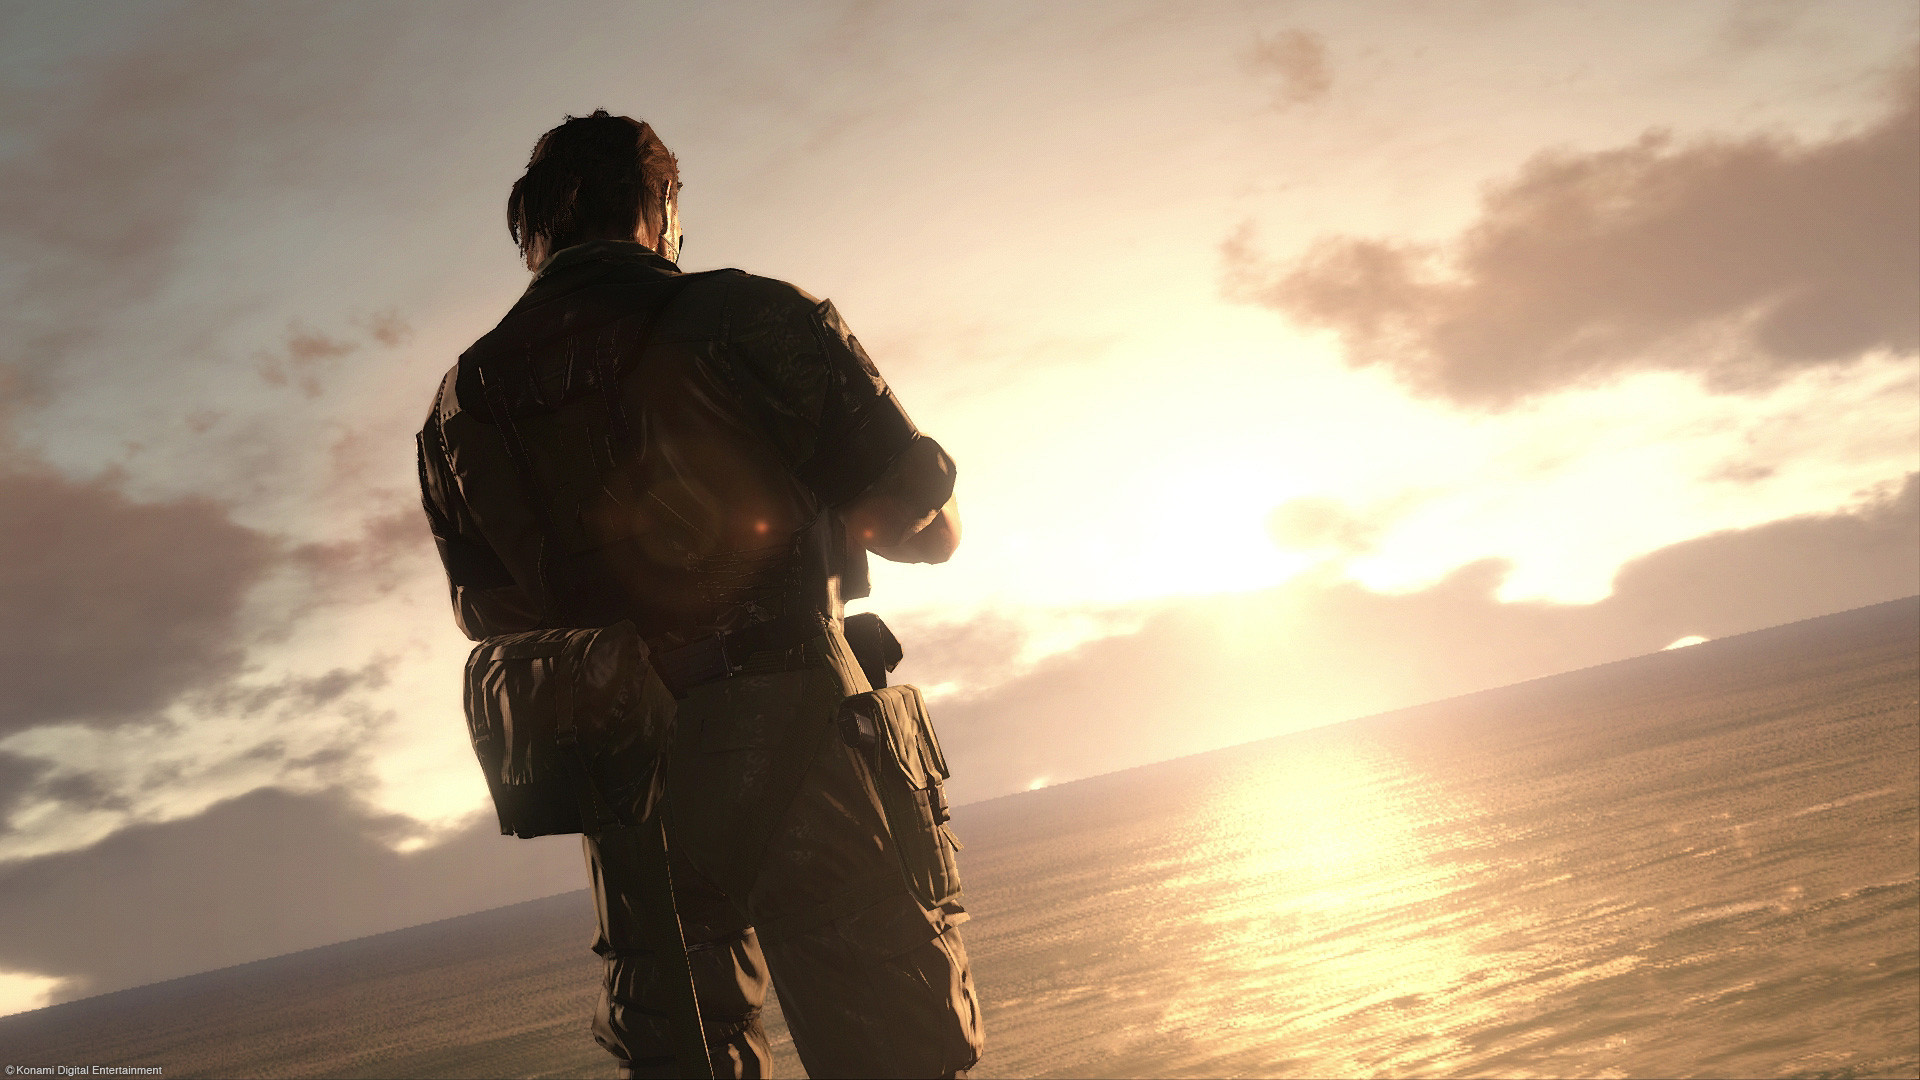 Super Metal Gear Solid V The Phantom Pain Wallpaper | Full HD Pictures